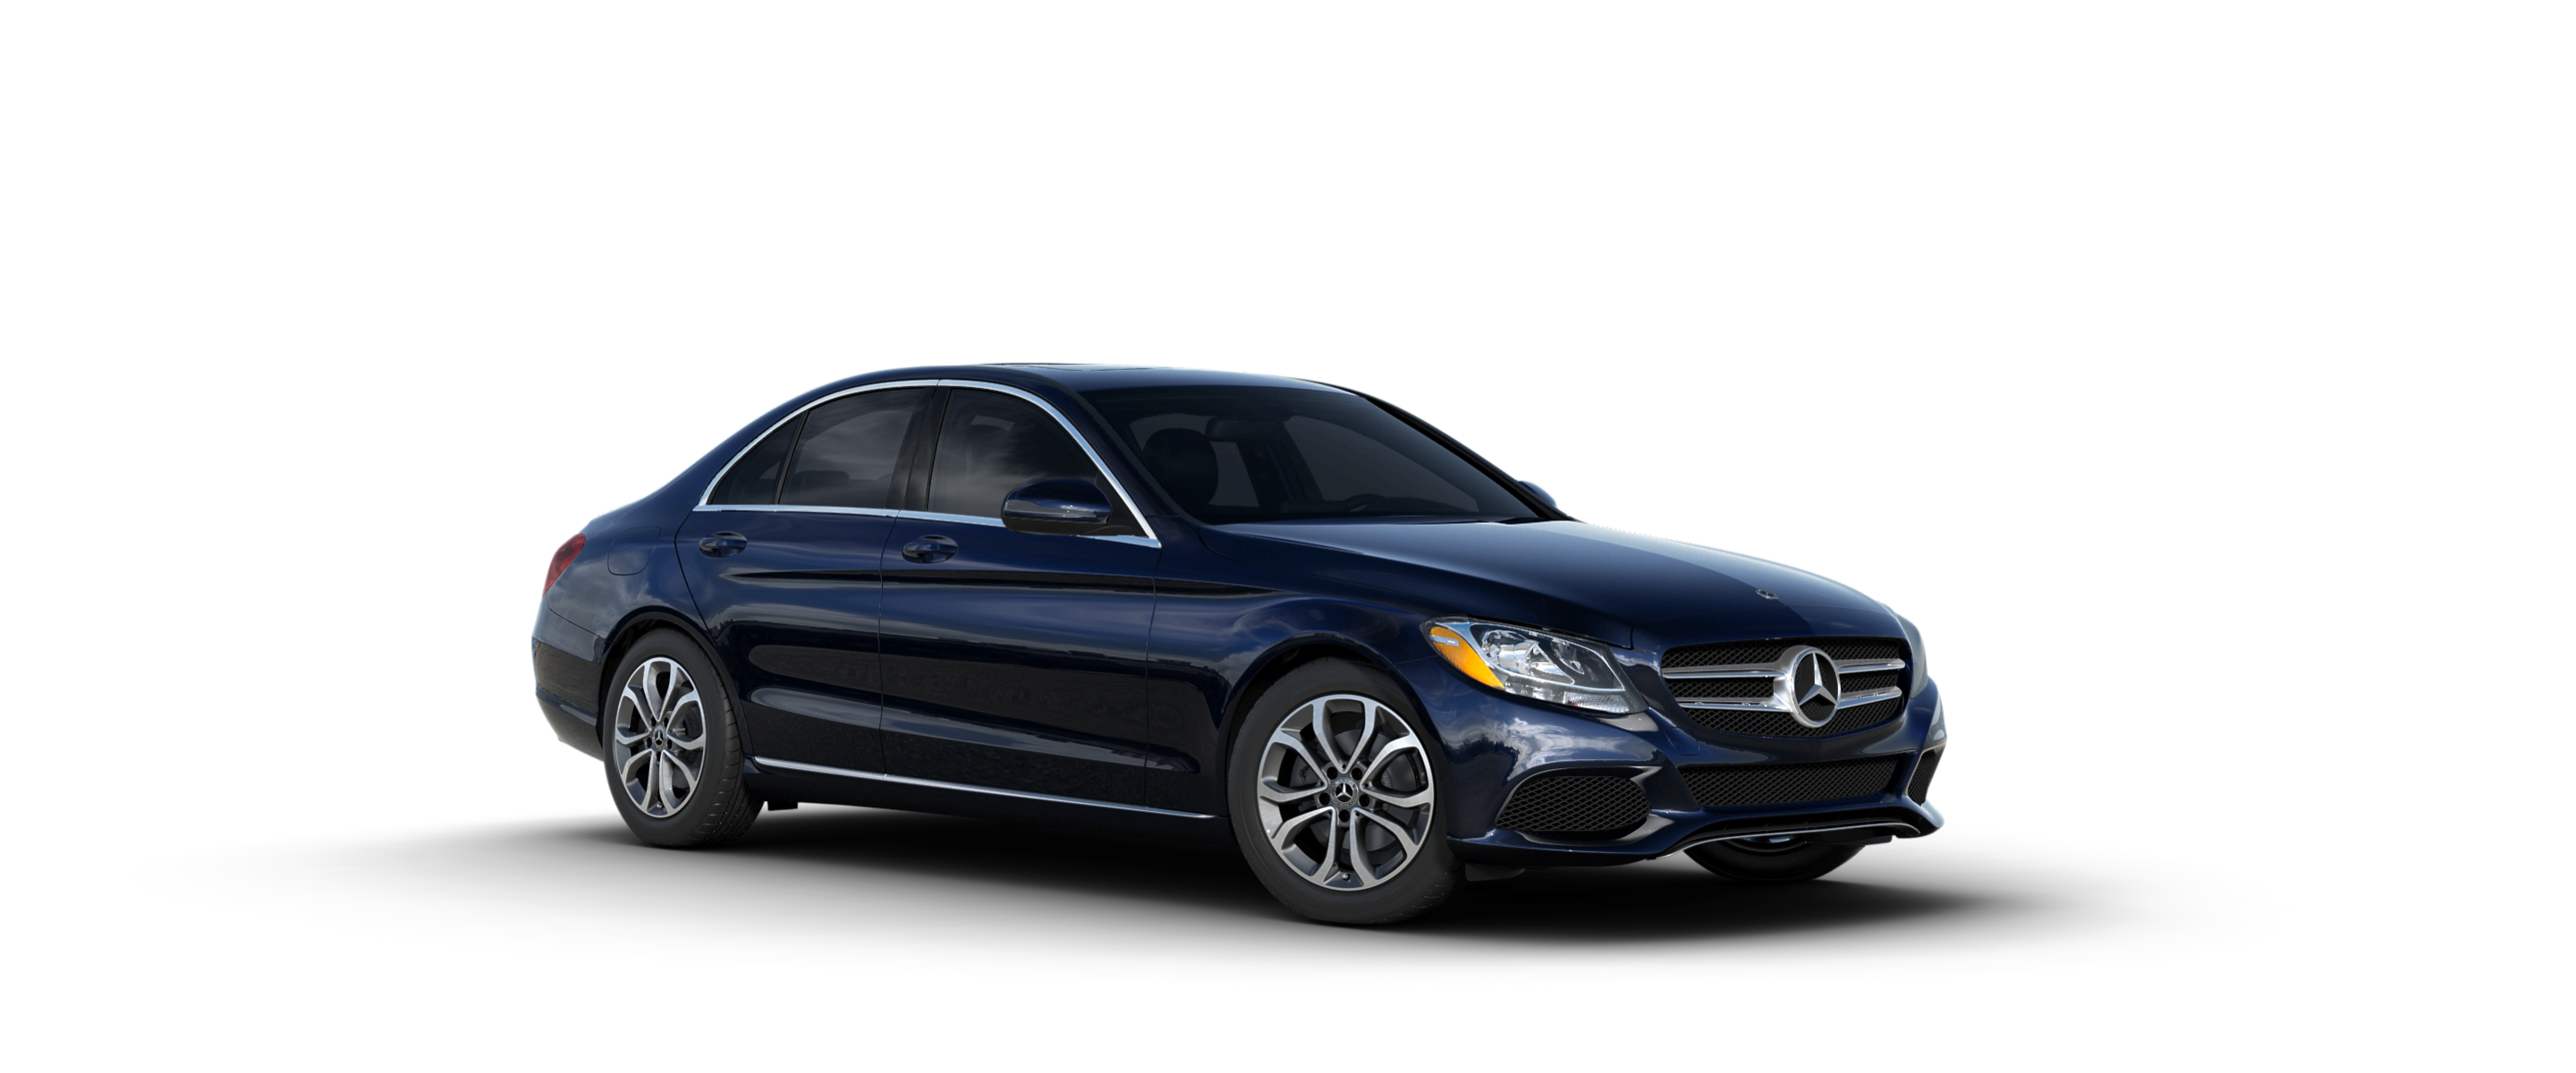 What colors are available for the 2018 mercedes benz c class for Mercedes benz lunar blue